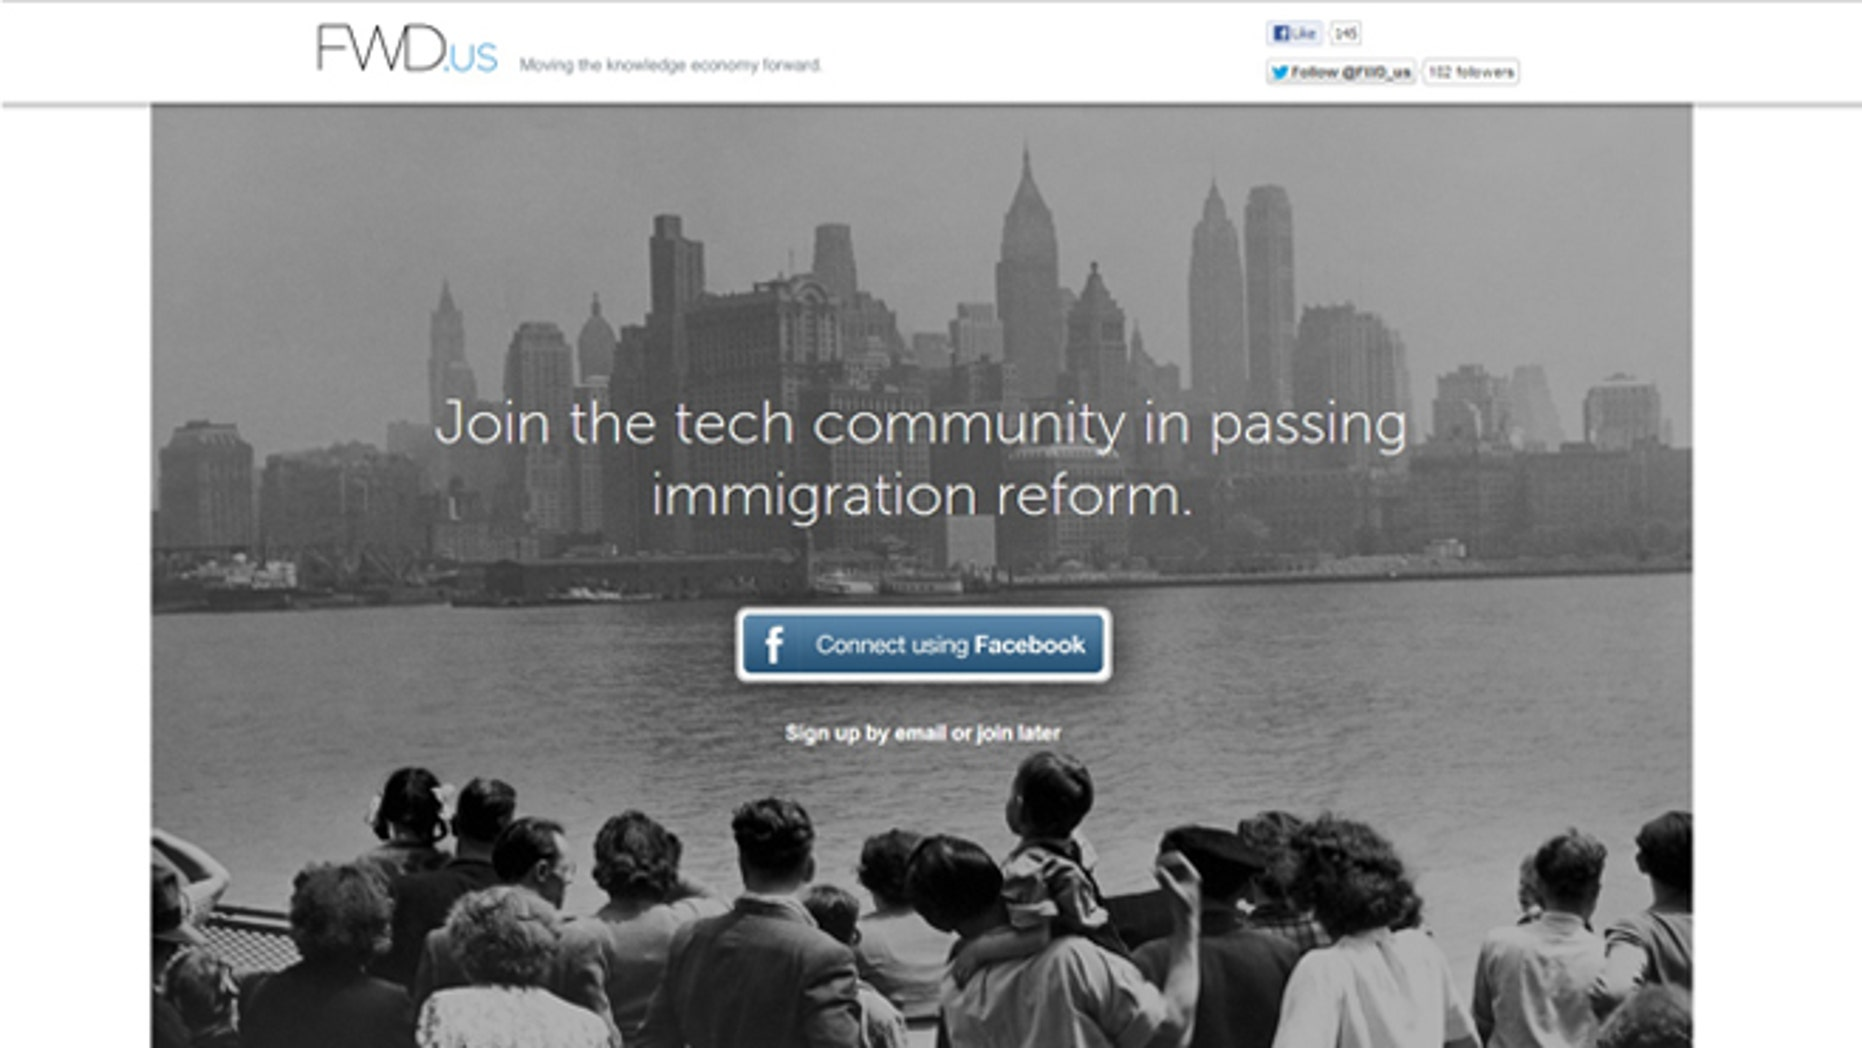 Apr. 11, 2013: A screenshot of the homepage for Fwd.us, a new political action group launched by Facebook founder Mark Zuckerberg.